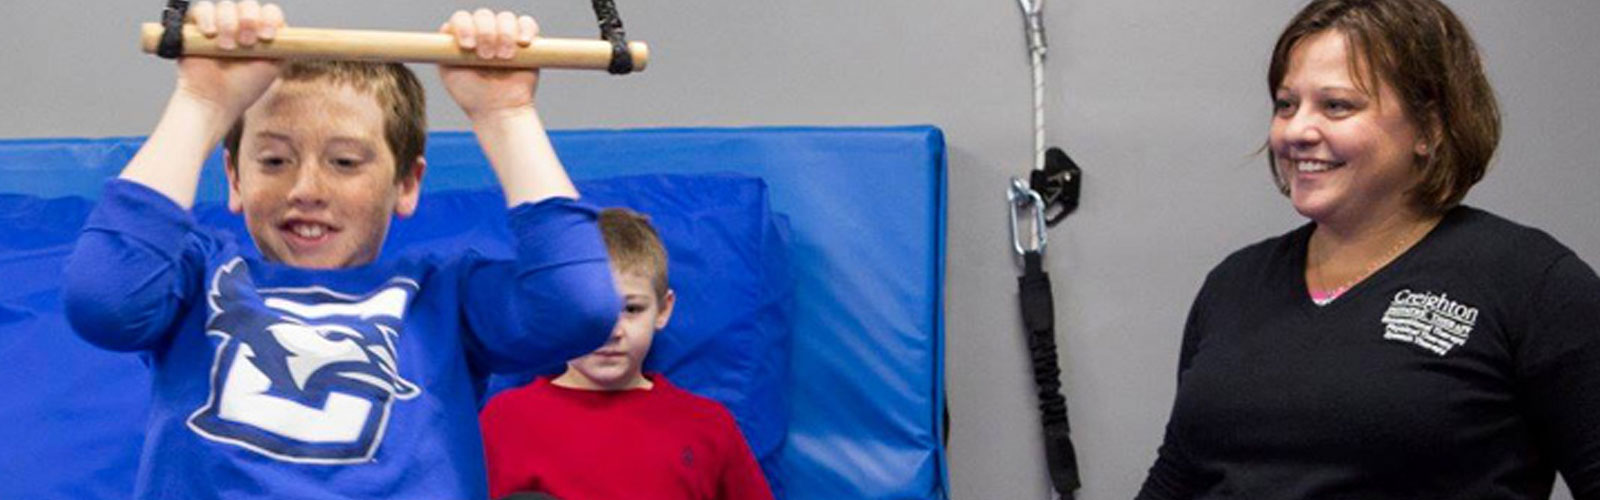 child playing for Creighton University Pediatric Therapy